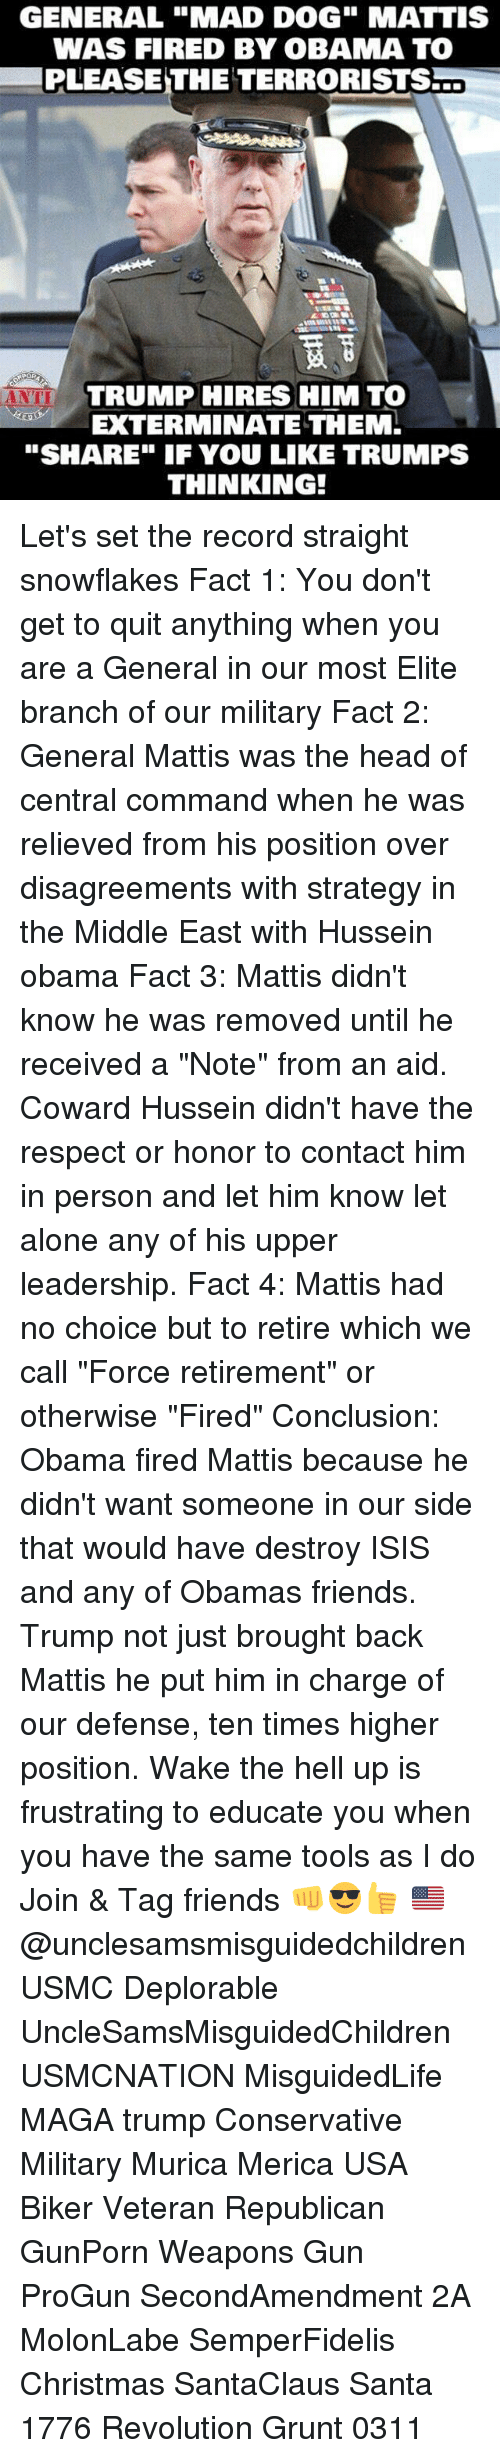 """Destroy Isis: GENERAL """"MAD DOG"""" MATTIS  WAS FIRED BY OBAMA TO  PLEASE THE TERRORISTS  TRUMP HIRES HIM TO  EXTERMINATE THEM.  """"SHARE"""" IF YOU LIKE TRUMPS  THINKING! Let's set the record straight snowflakes Fact 1: You don't get to quit anything when you are a General in our most Elite branch of our military Fact 2: General Mattis was the head of central command when he was relieved from his position over disagreements with strategy in the Middle East with Hussein obama Fact 3: Mattis didn't know he was removed until he received a """"Note"""" from an aid. Coward Hussein didn't have the respect or honor to contact him in person and let him know let alone any of his upper leadership. Fact 4: Mattis had no choice but to retire which we call """"Force retirement"""" or otherwise """"Fired"""" Conclusion: Obama fired Mattis because he didn't want someone in our side that would have destroy ISIS and any of Obamas friends. Trump not just brought back Mattis he put him in charge of our defense, ten times higher position. Wake the hell up is frustrating to educate you when you have the same tools as I do Join & Tag friends 👊😎👍 🇺🇸@unclesamsmisguidedchildren USMC Deplorable UncleSamsMisguidedChildren USMCNATION MisguidedLife MAGA trump Conservative Military Murica Merica USA Biker Veteran Republican GunPorn Weapons Gun ProGun SecondAmendment 2A MolonLabe SemperFidelis Christmas SantaClaus Santa 1776 Revolution Grunt 0311"""